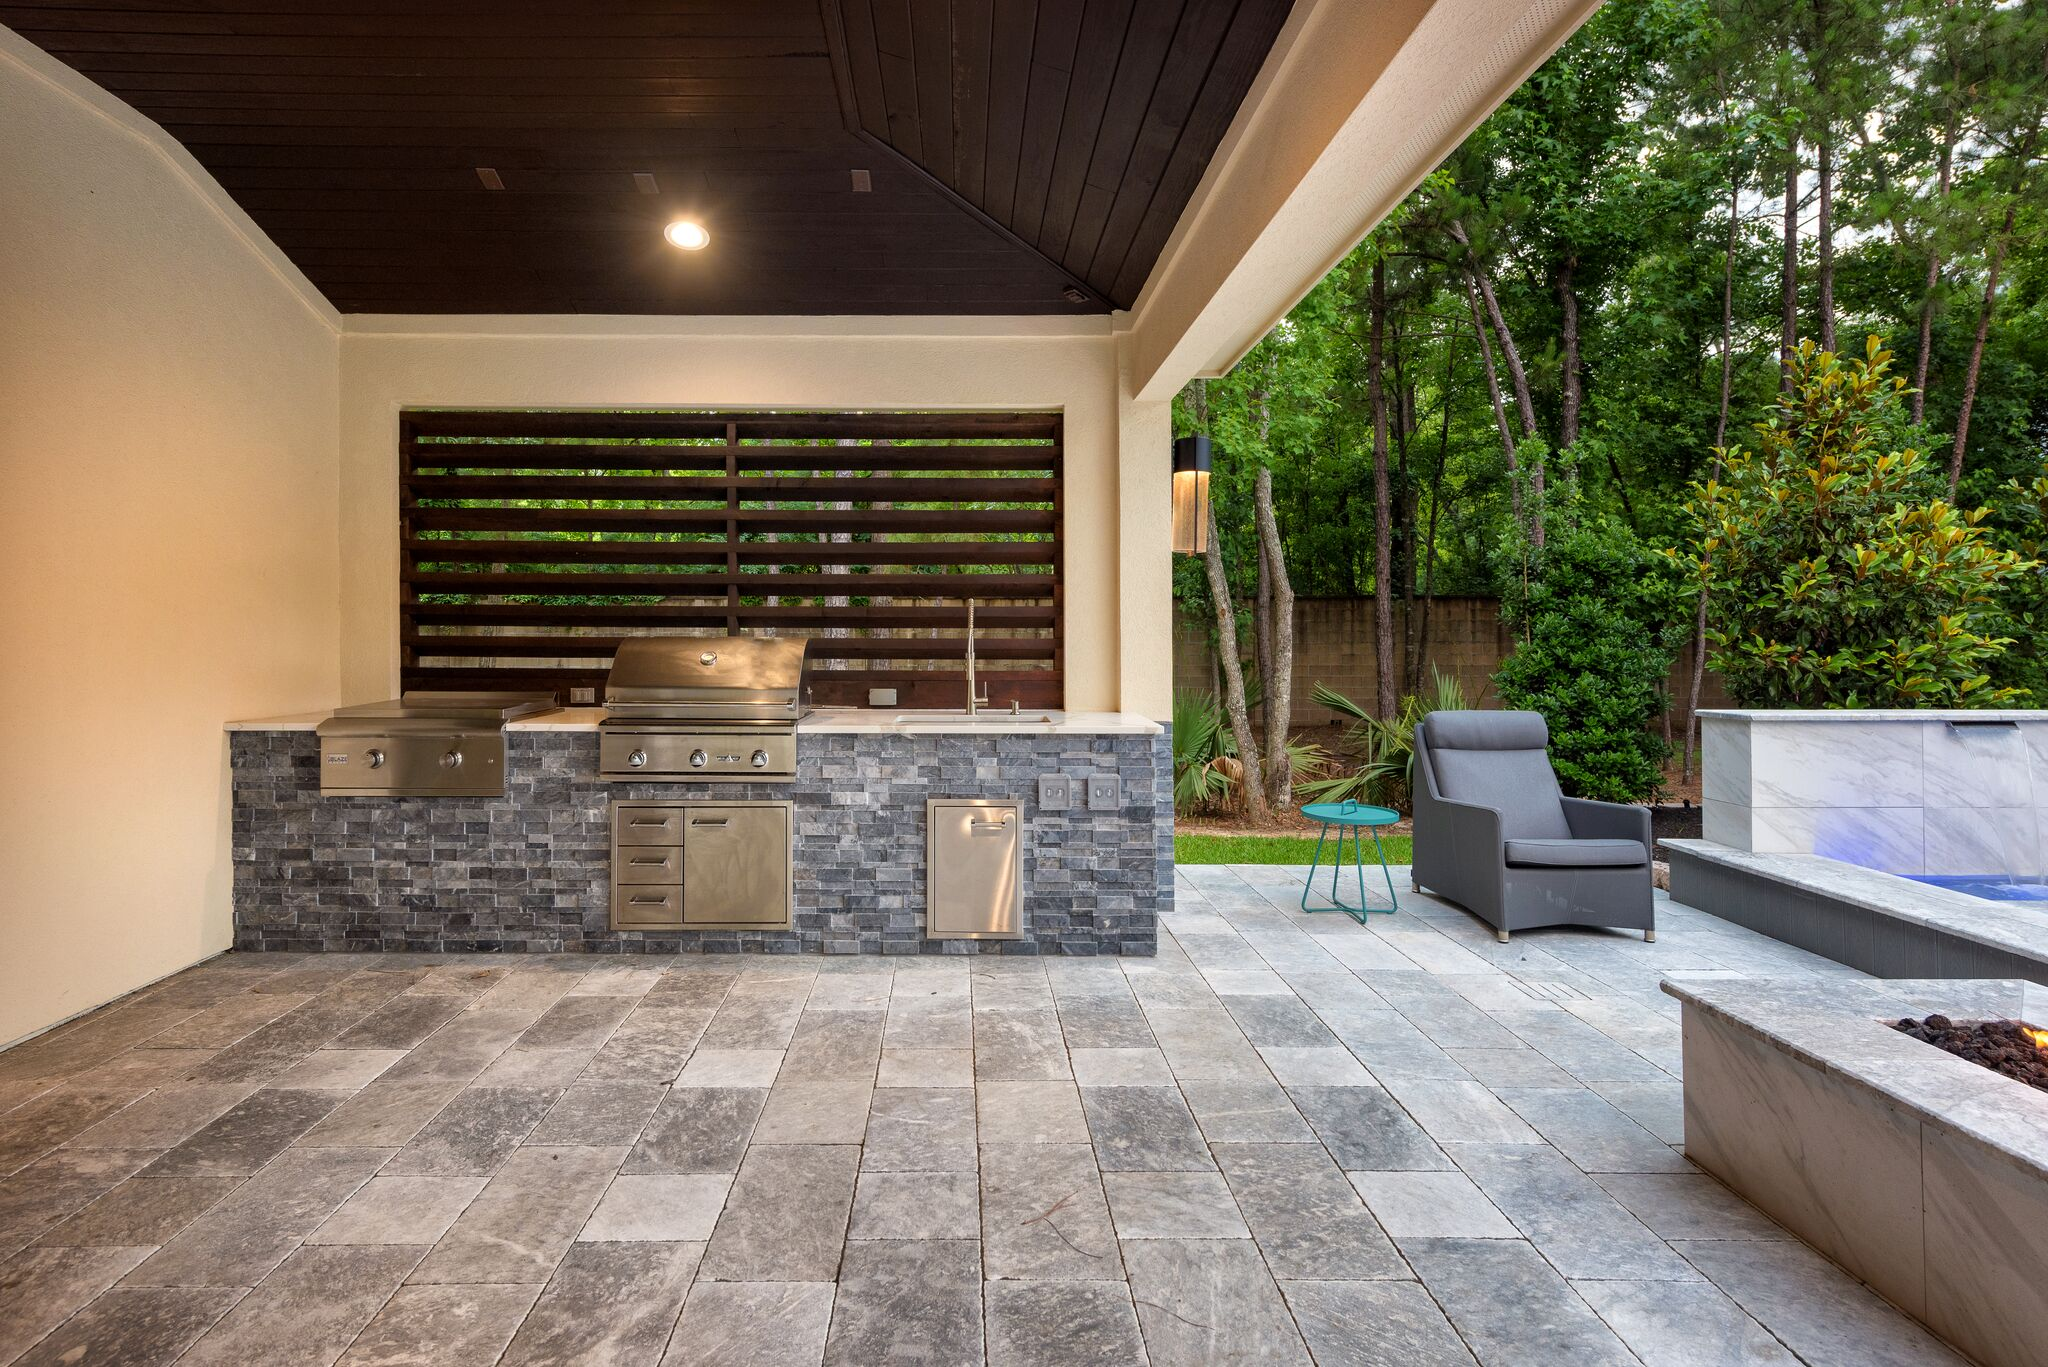 Outdoor living spaces regal pools the woodlands tx - Outdoor living spaces with fireplace ...